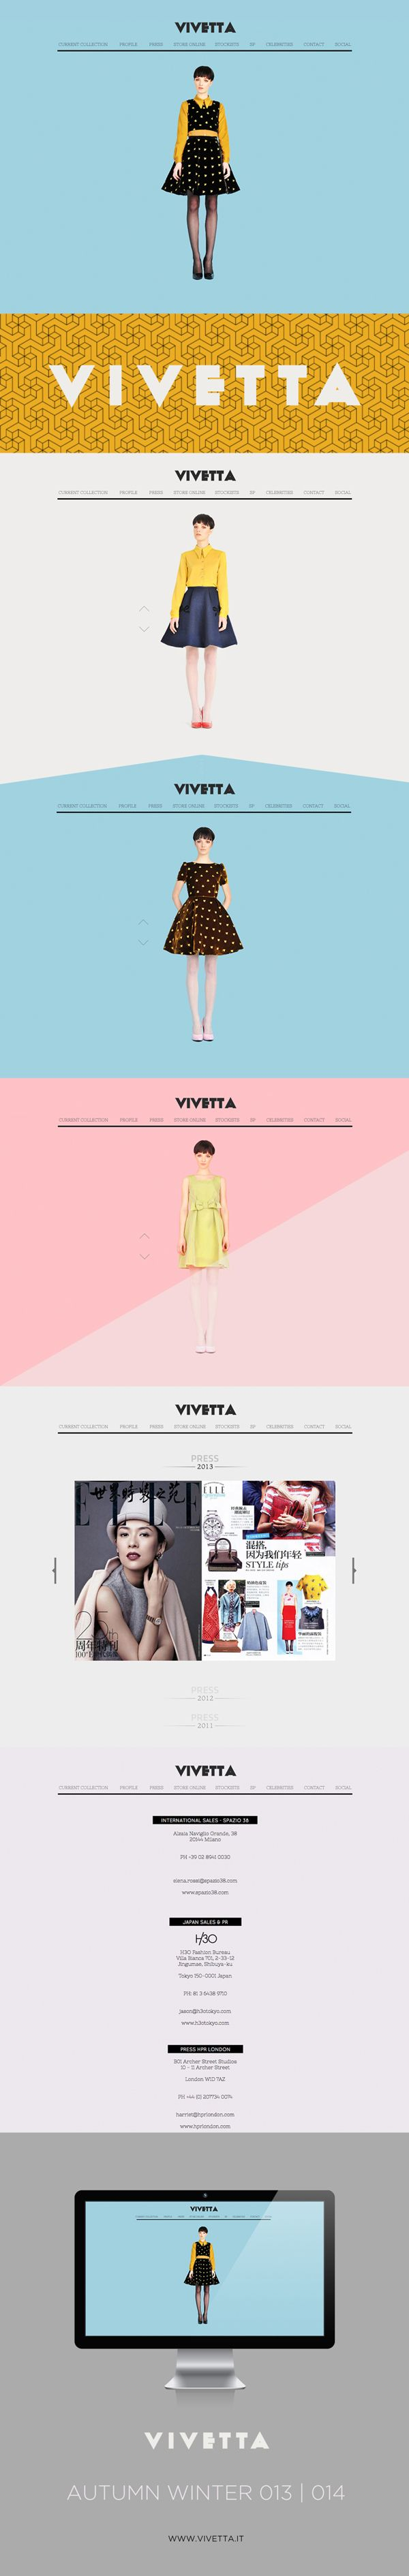 VIVETTA - WEB DESIGN 2013 by Houkart , via Behance